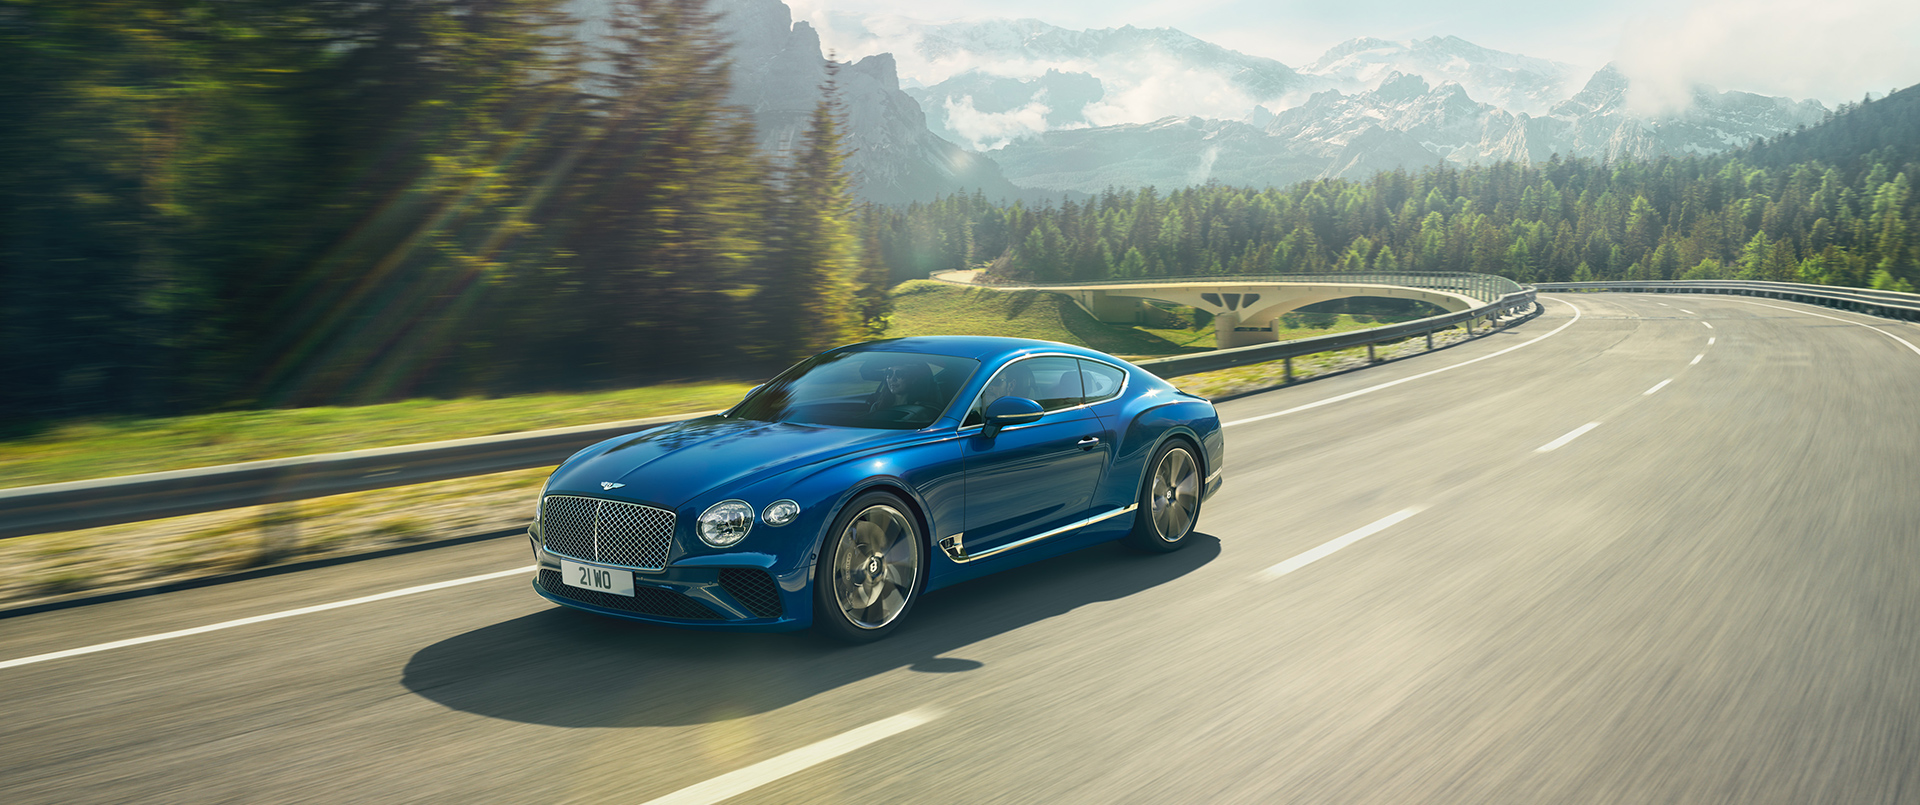 THE NEW CONTINENTAL GT TOUR 2018